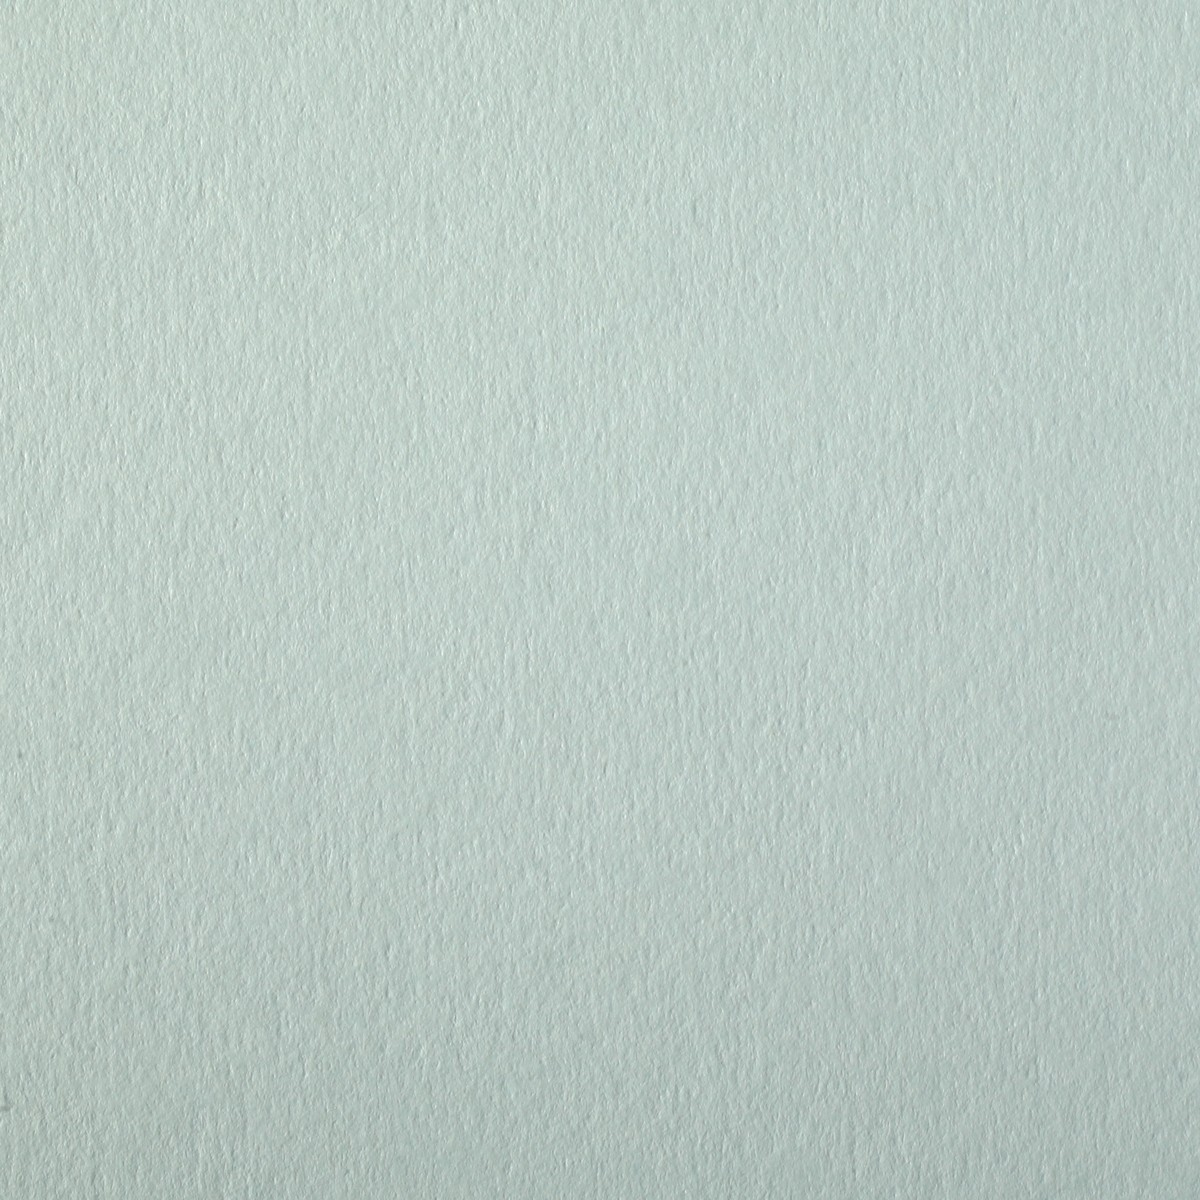 "Colorplan Powder Green 12 1/2"" x 19"" 130# Cover Sheets Pack of 50"